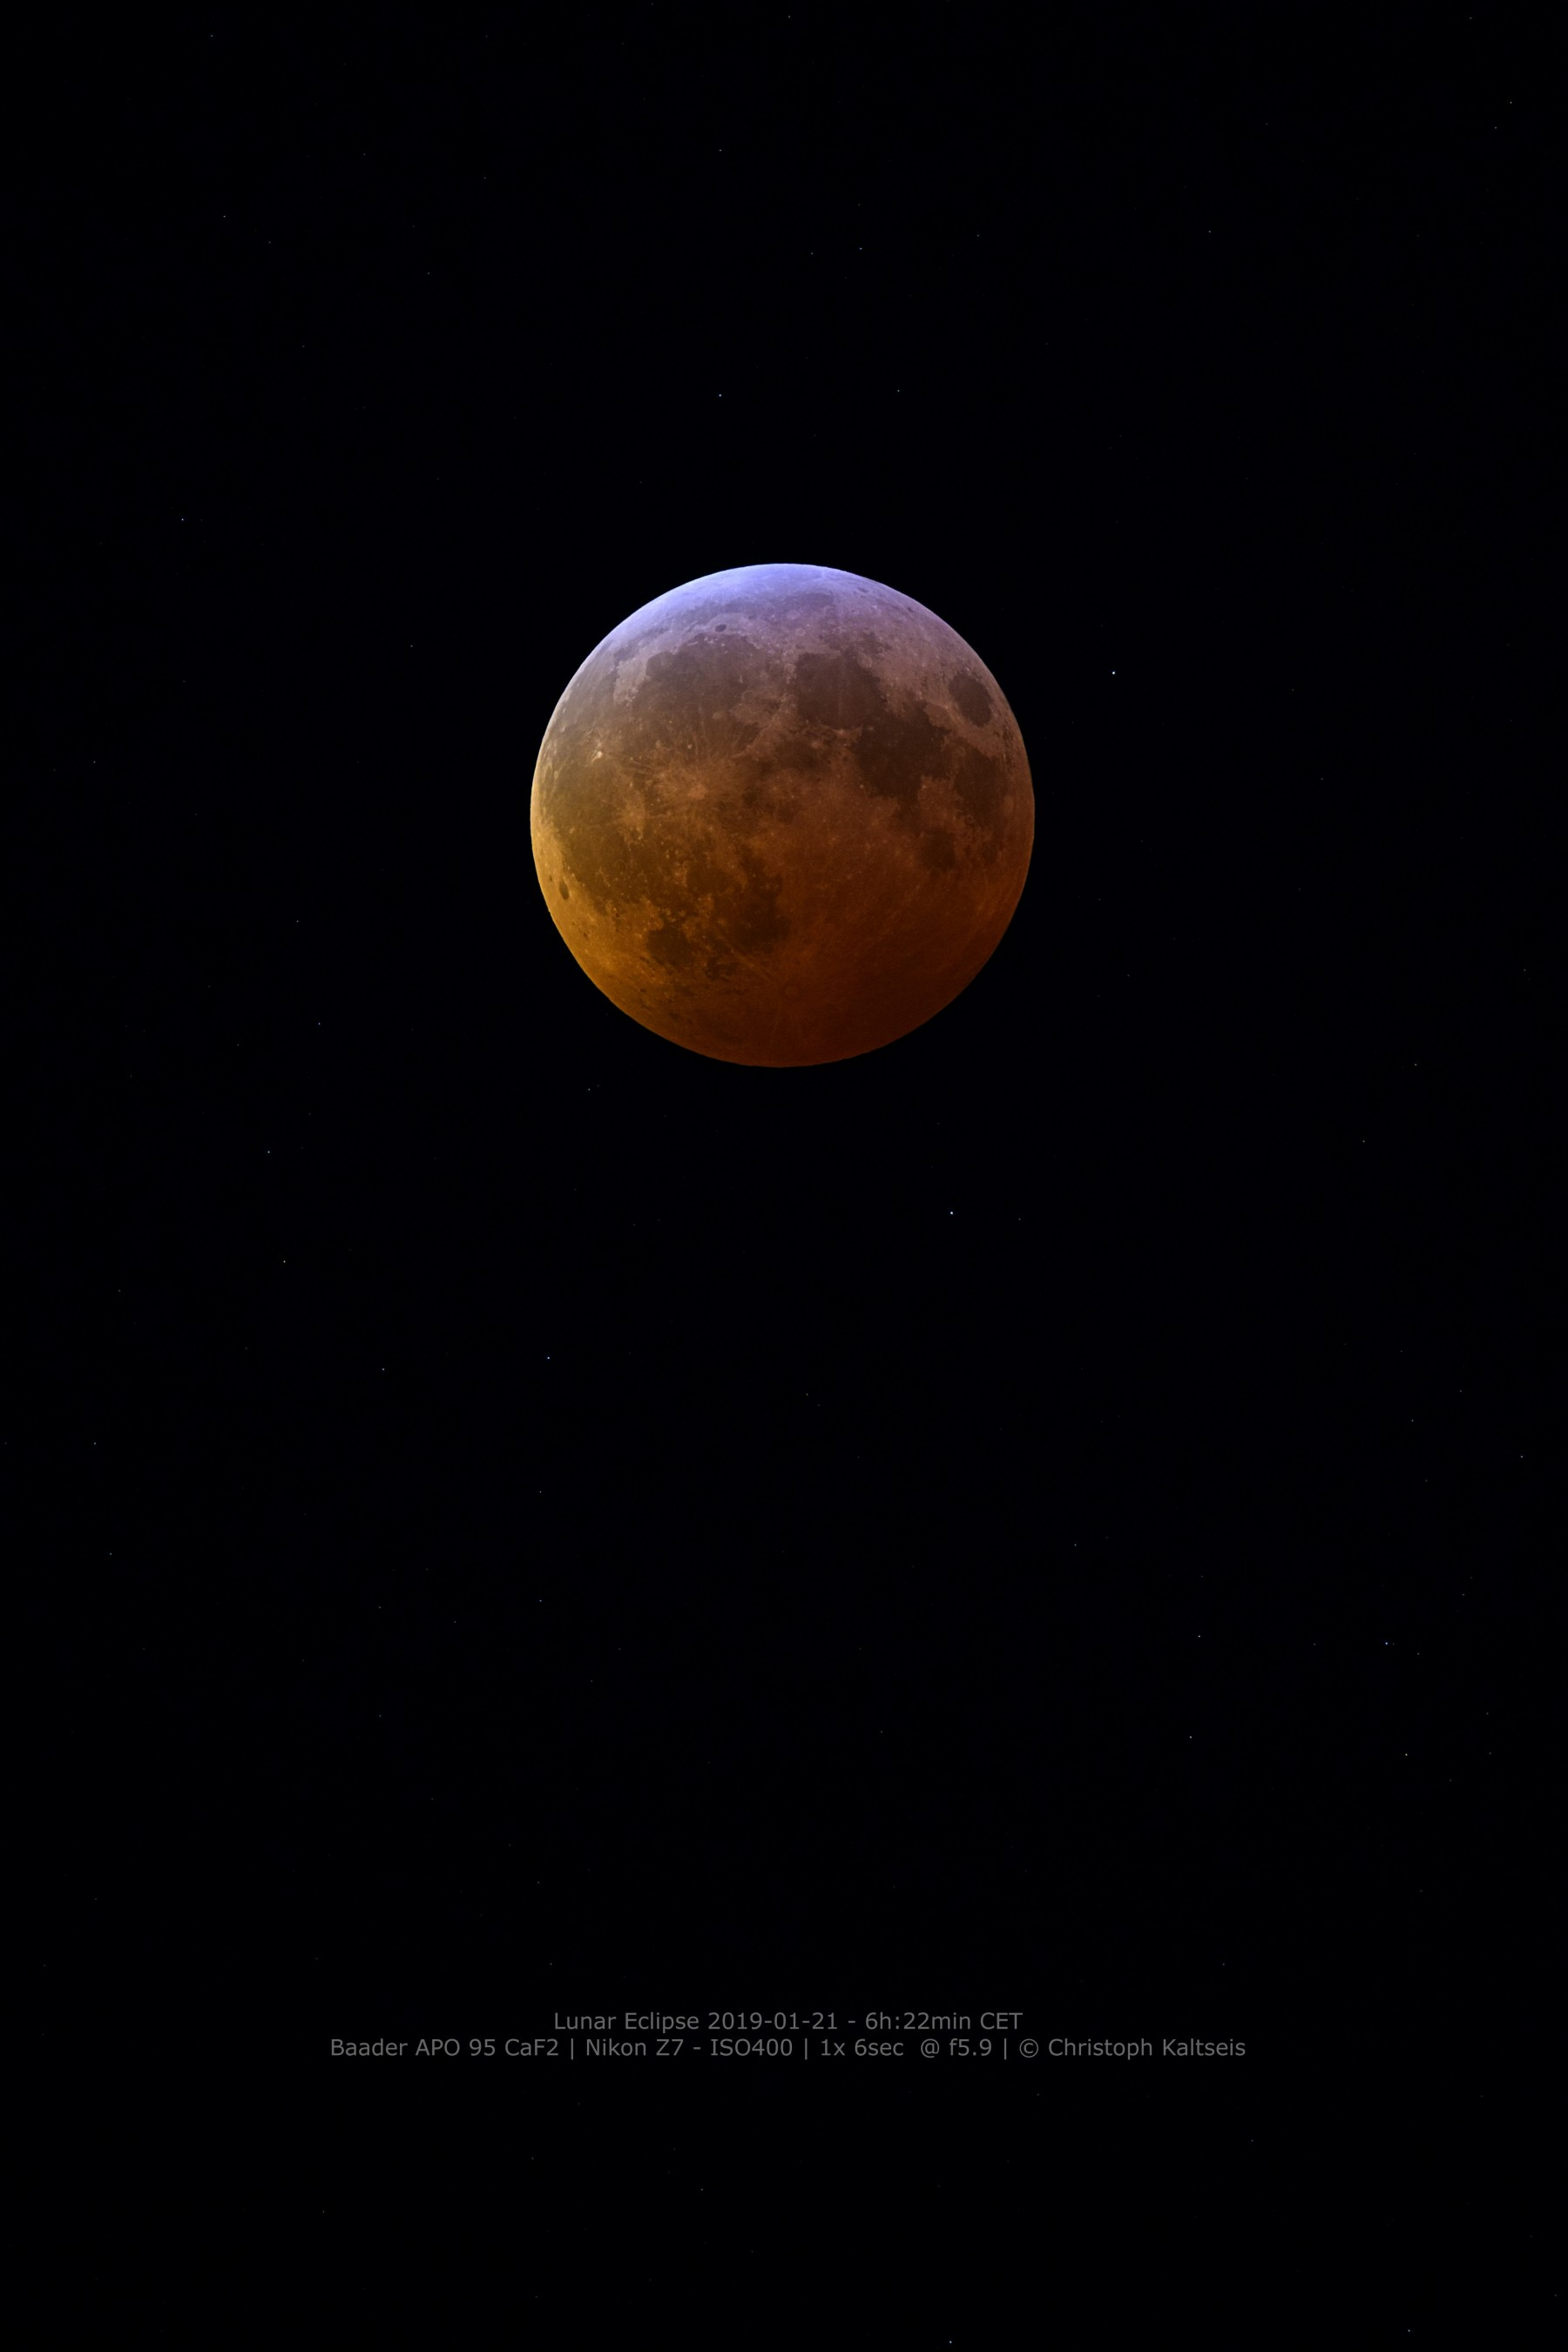 Application image: Lunar Eclipse 2019 - 01 -21, taken with Baader APO 95 CaF2, Nikon Z7, by C. Kaltseis